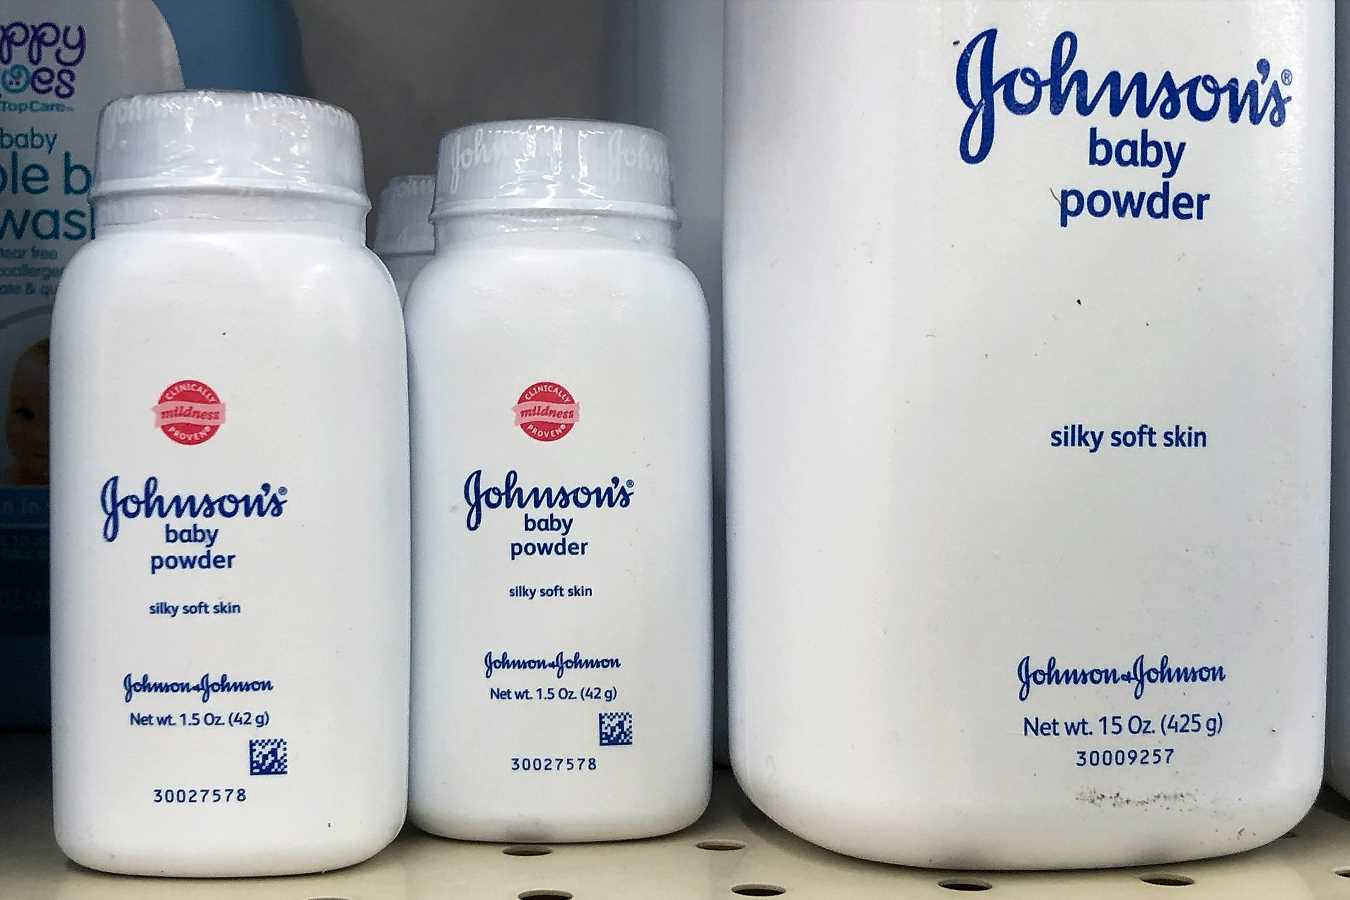 Johnson & Johnson Issues Voluntary Recall of Baby Powder Over Asbestos Concerns